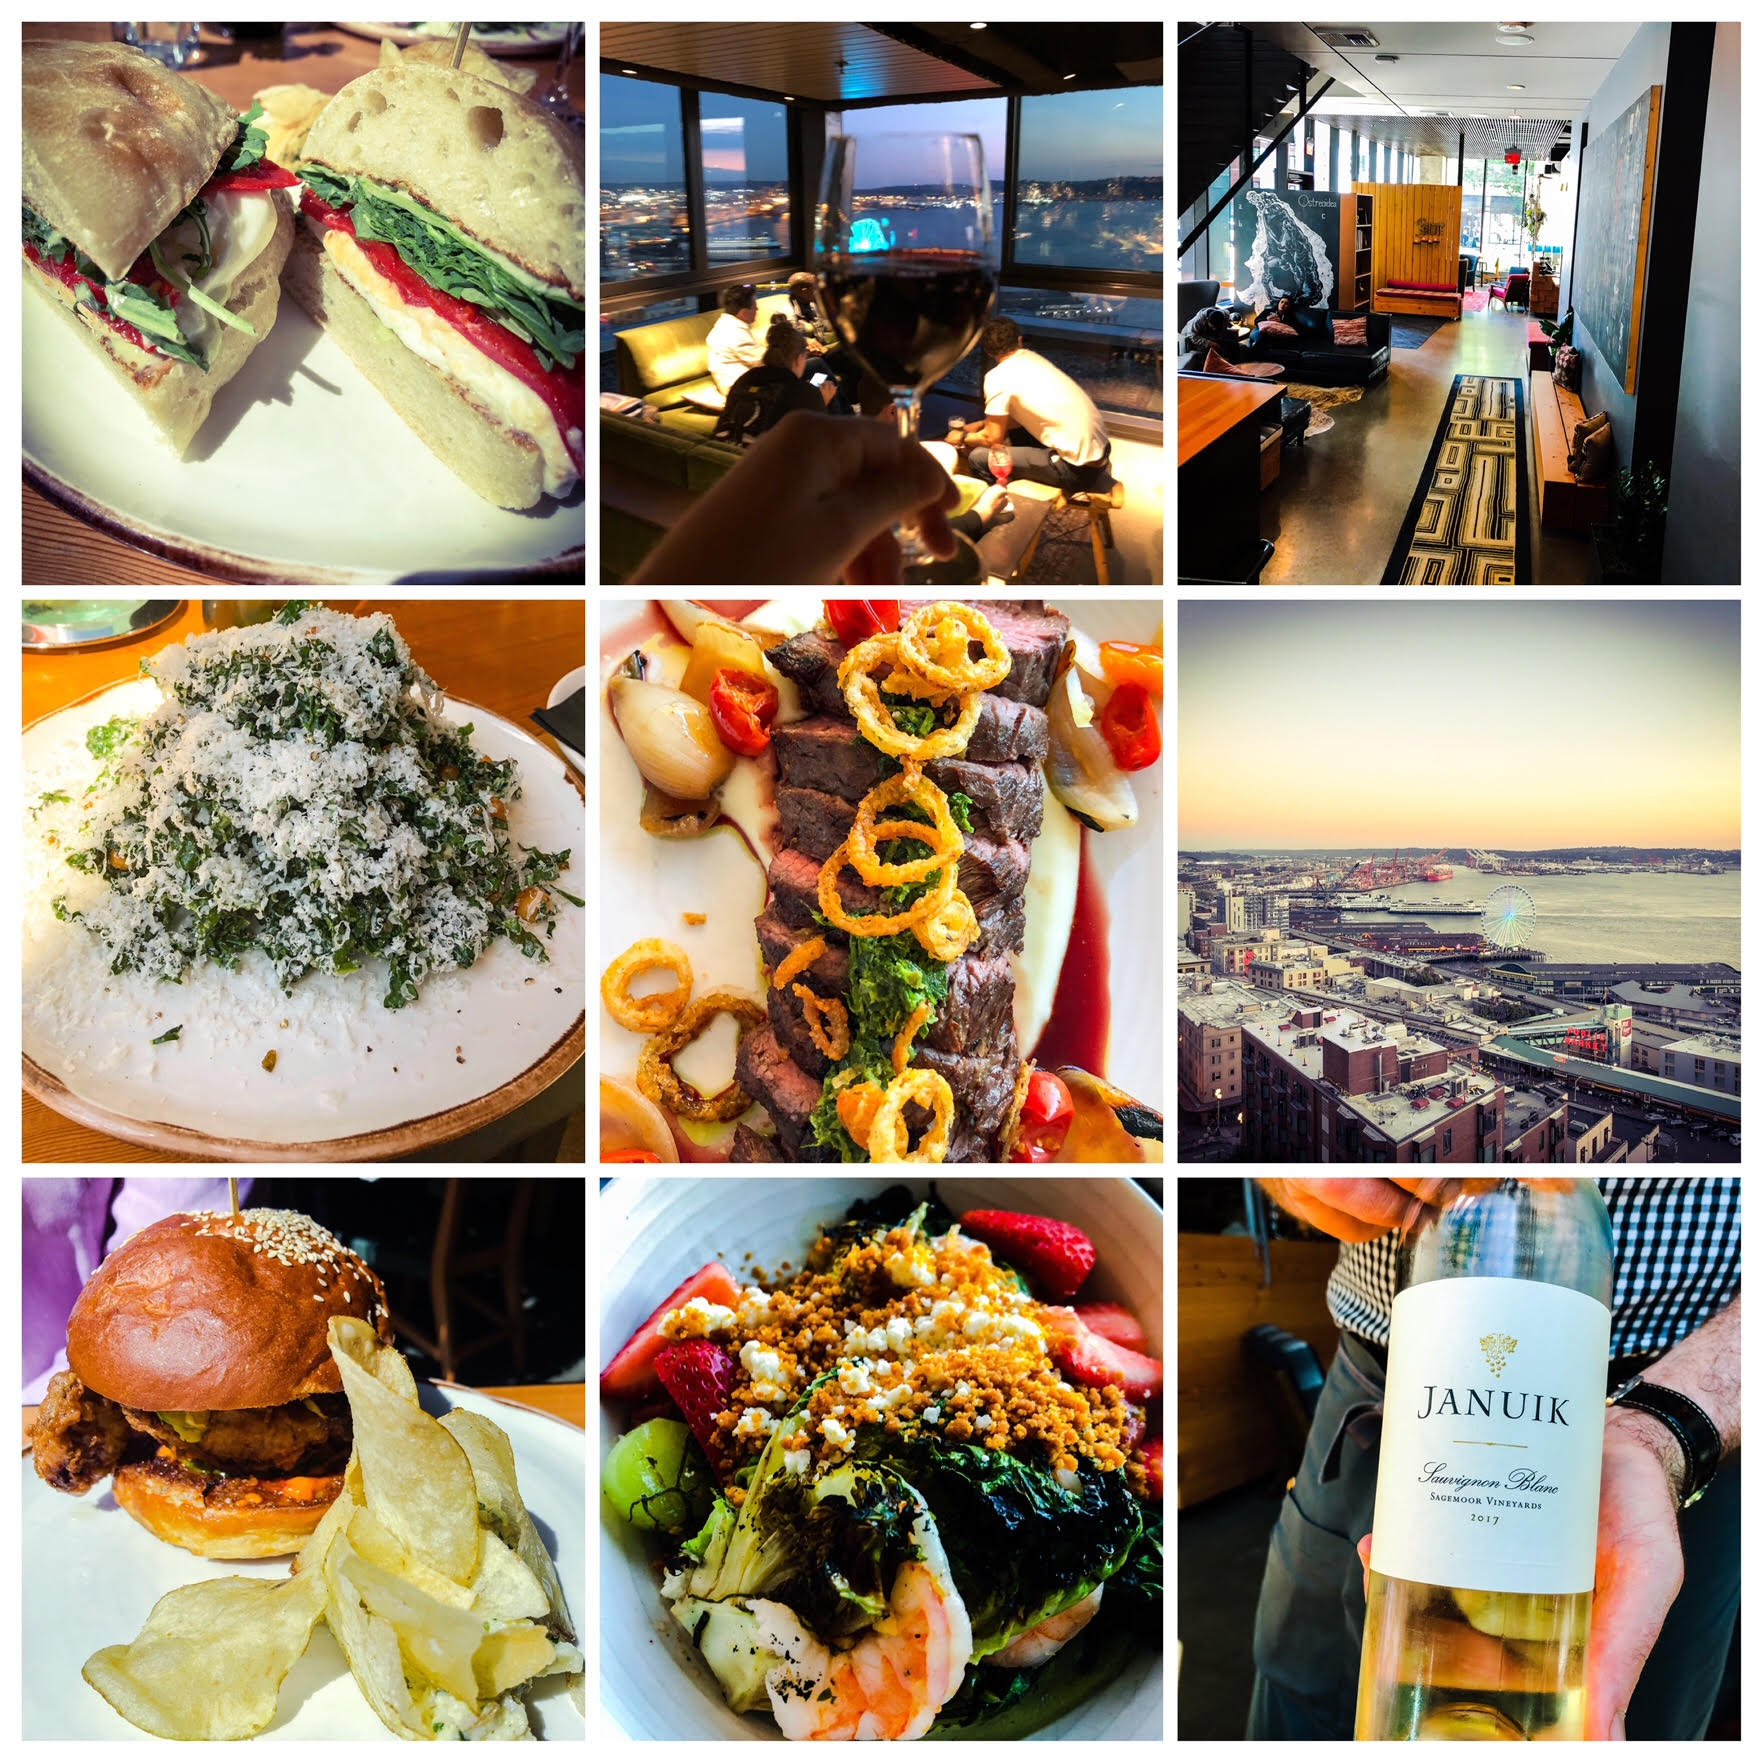 It was an amazing staycation at The Thompson Hotel Seattle